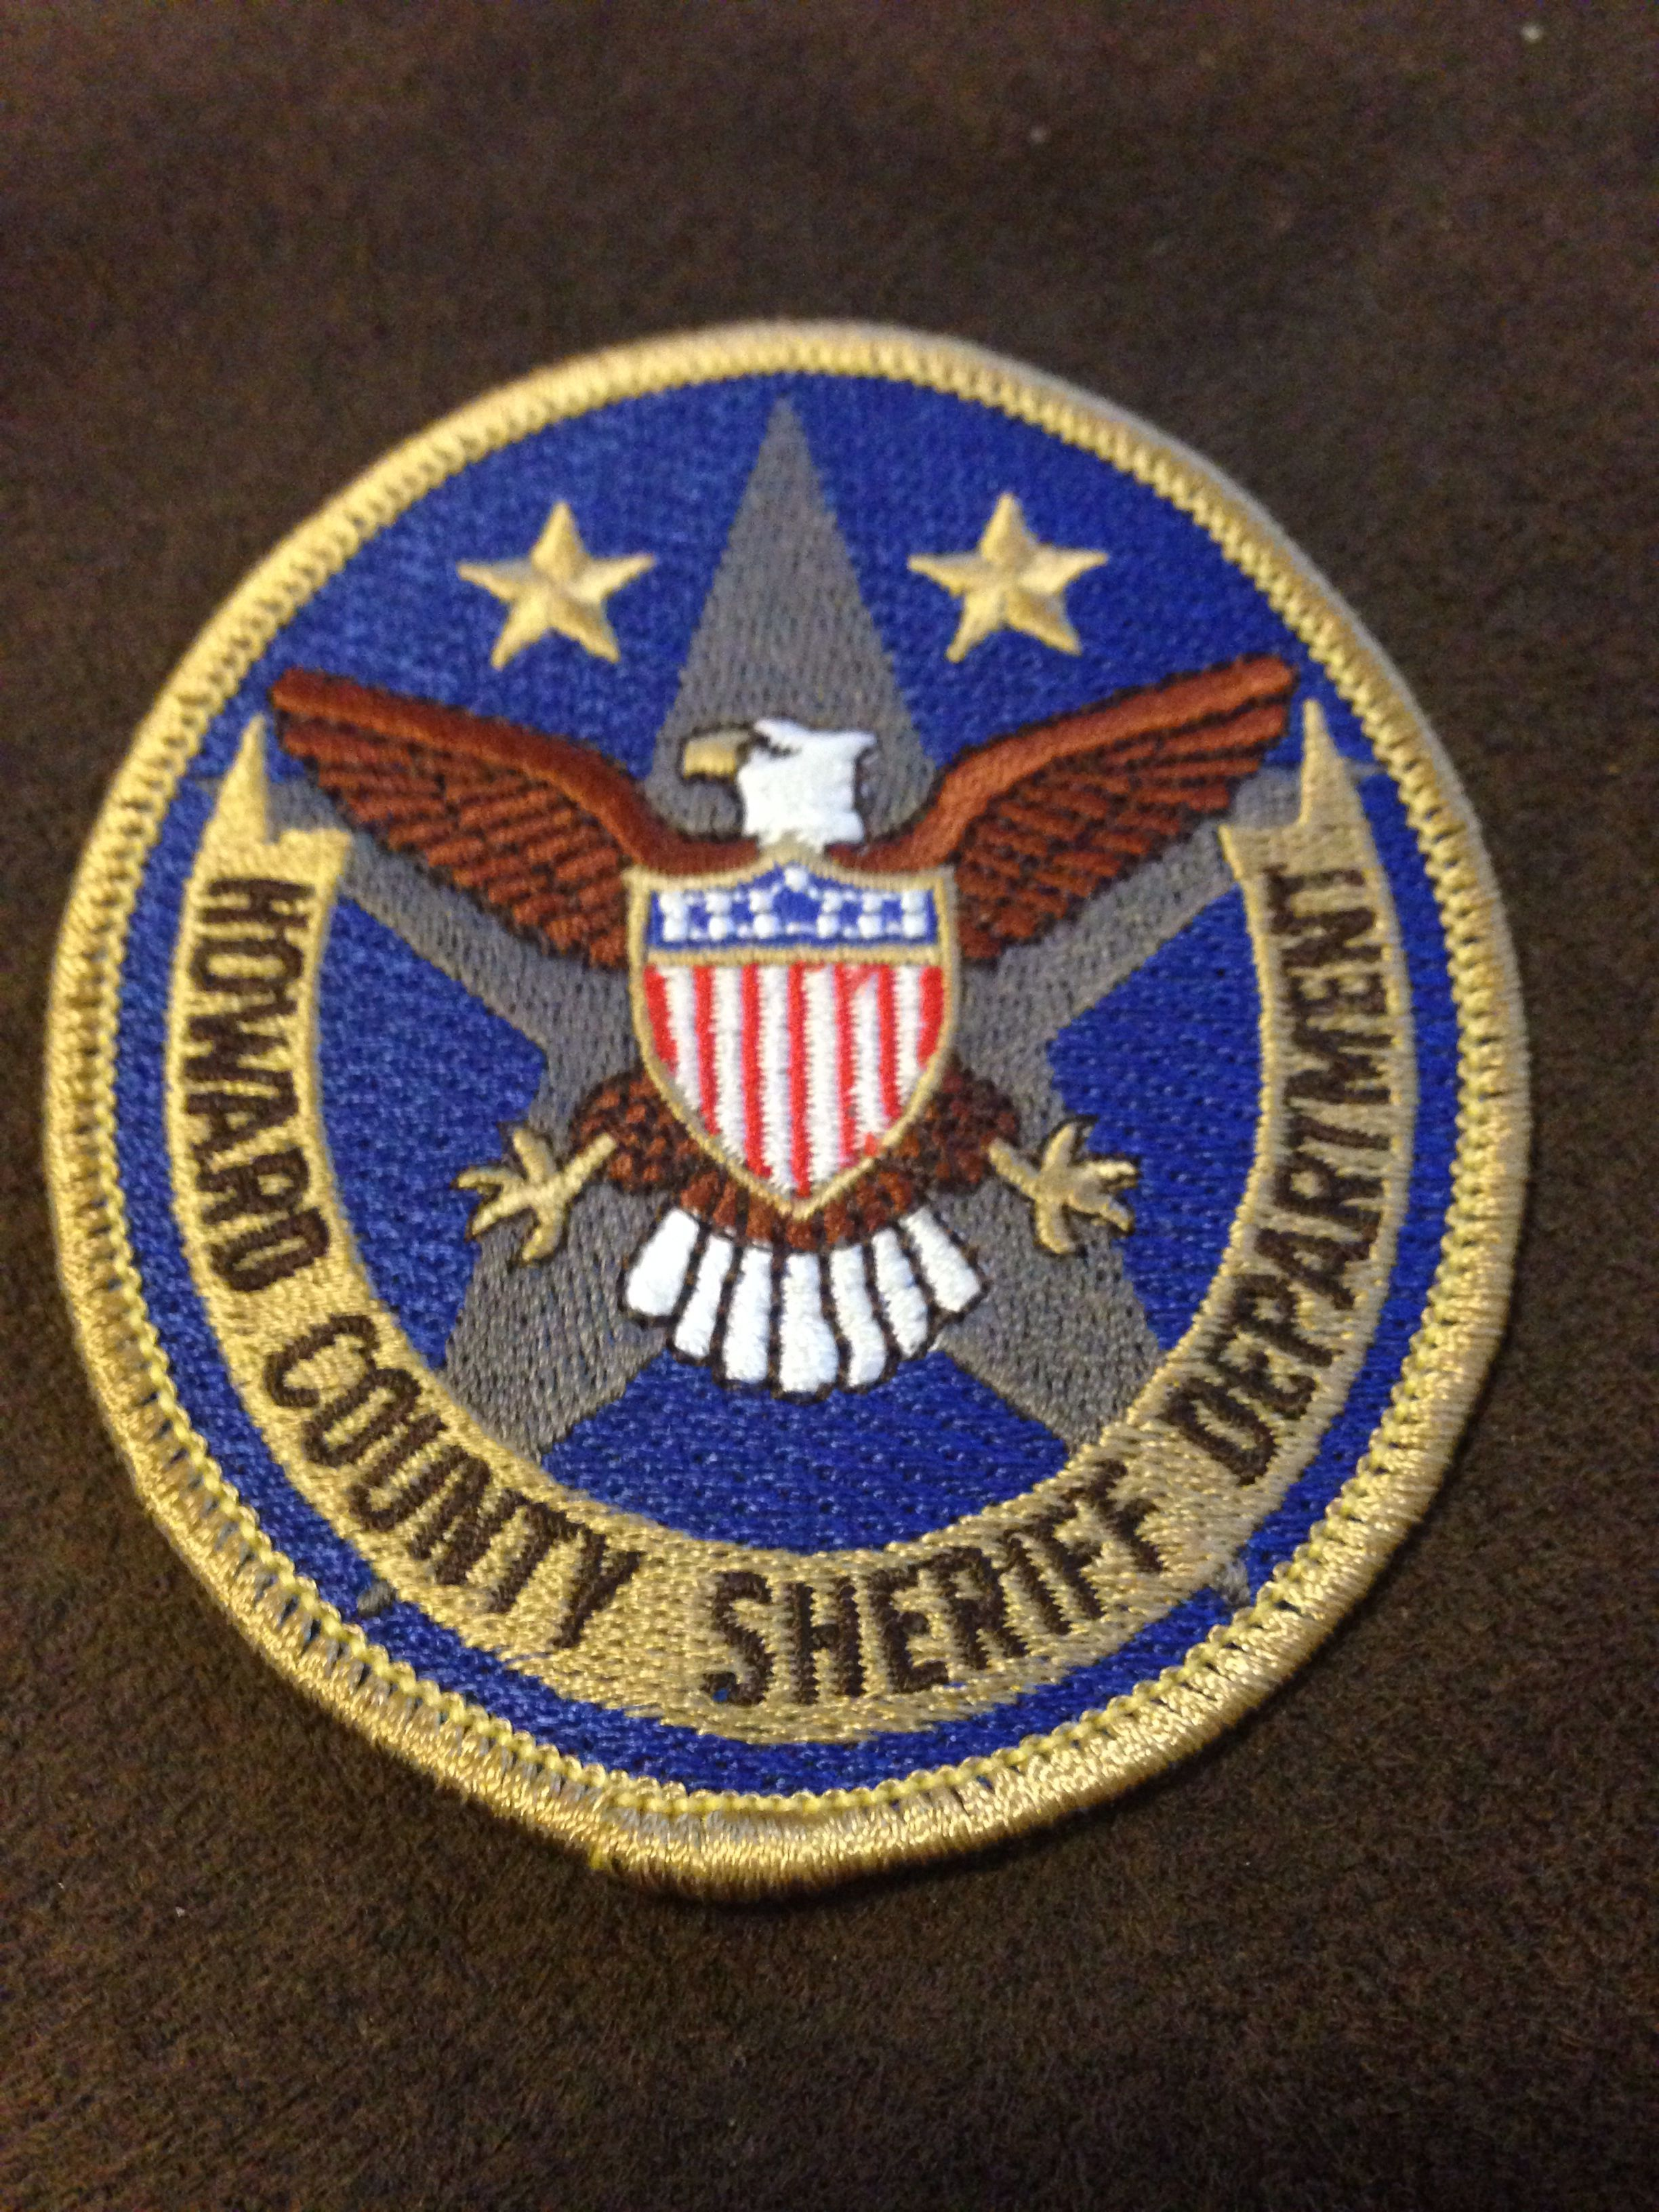 Howard County Sheriff's Department Police patches